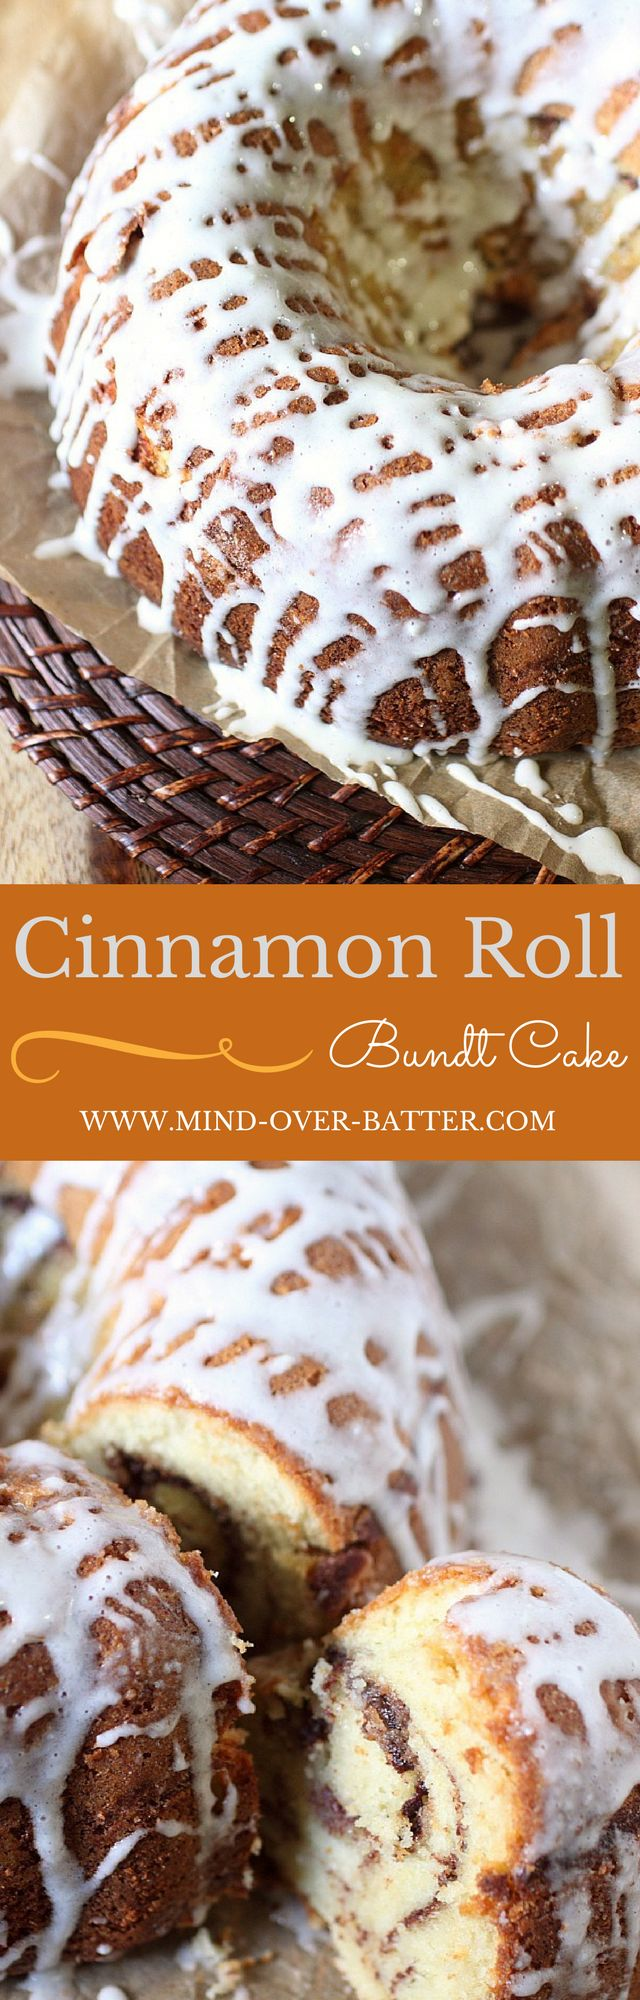 A tender pound cake with flecks of vanilla bean paste, swirls of spicy cinnamon sugar, and a tangy cream cheese icing. This Cinnamon Roll pound cake is like the Cinnamon Roll's sophisticated older brother. You know, if there were such a thing! www.mind-over-batter.com